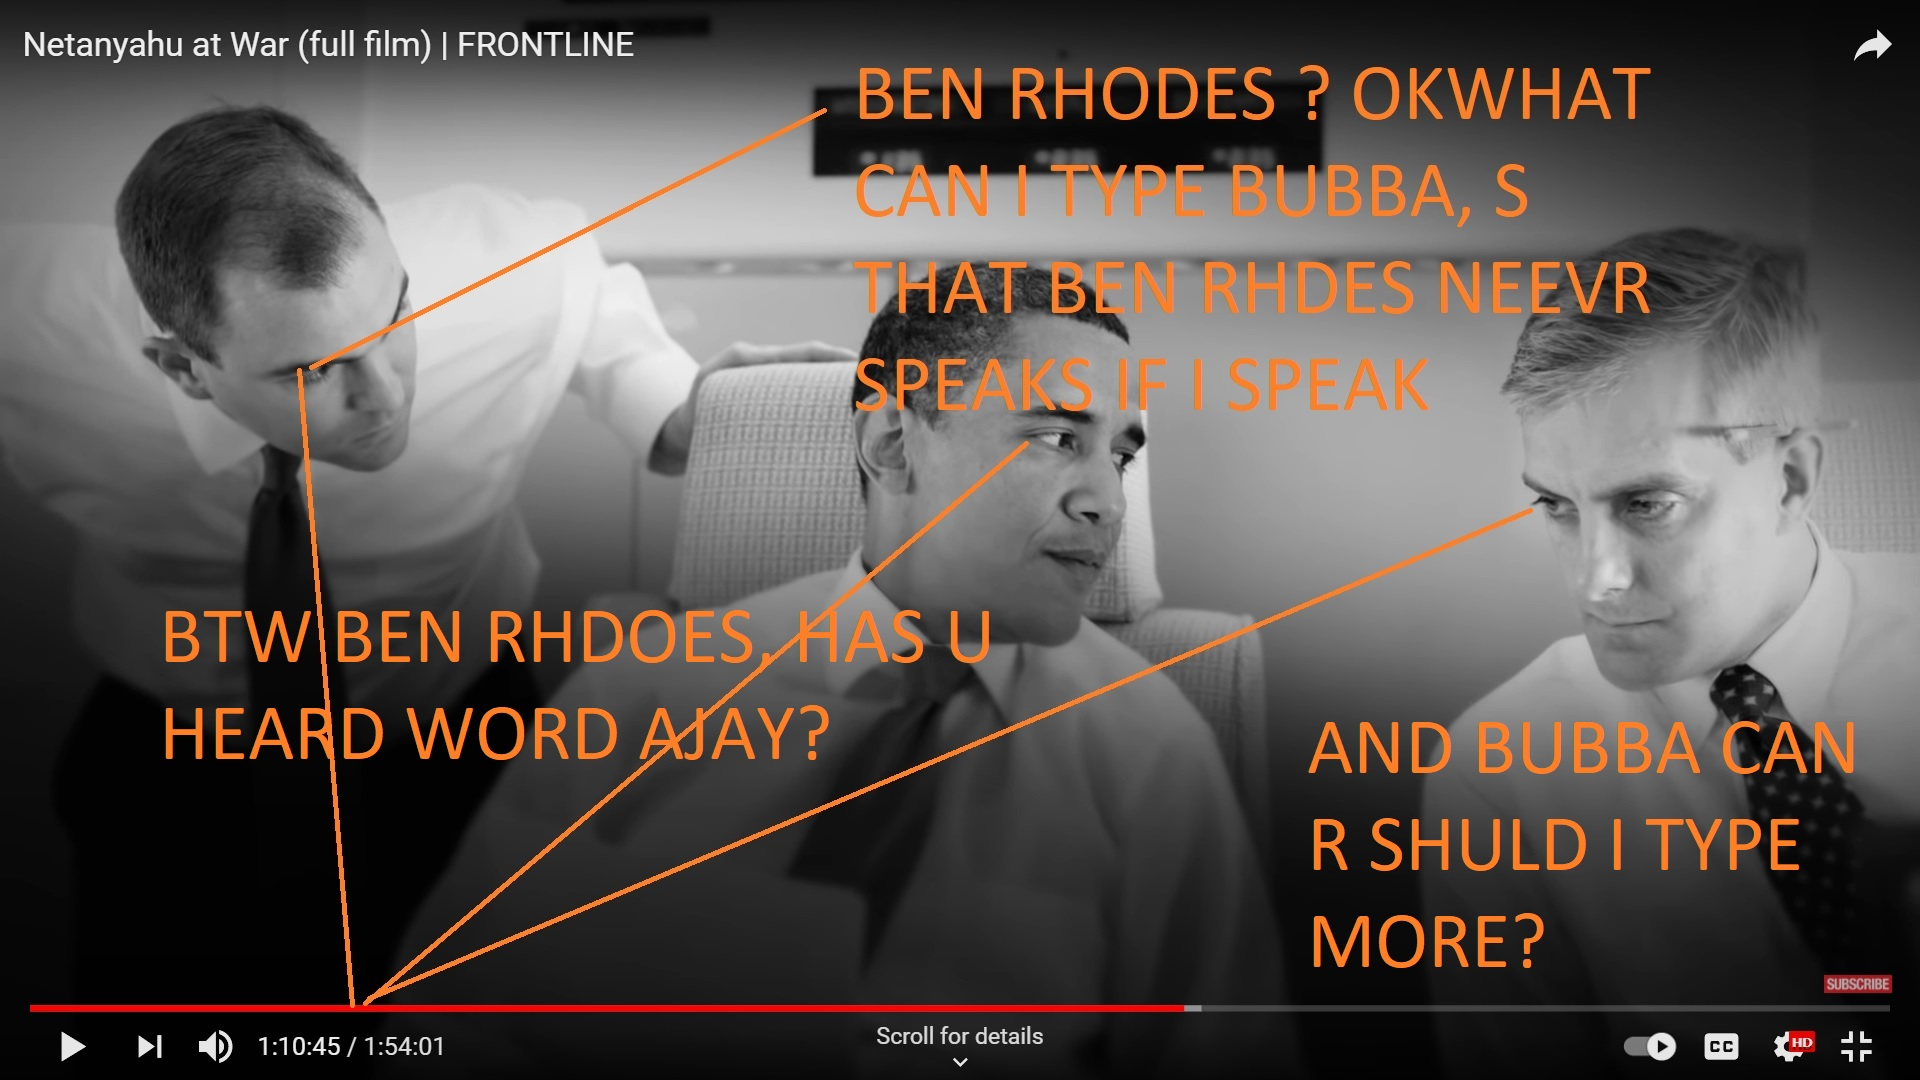 BEN RHODES HAS U HEARD WORD AJAY